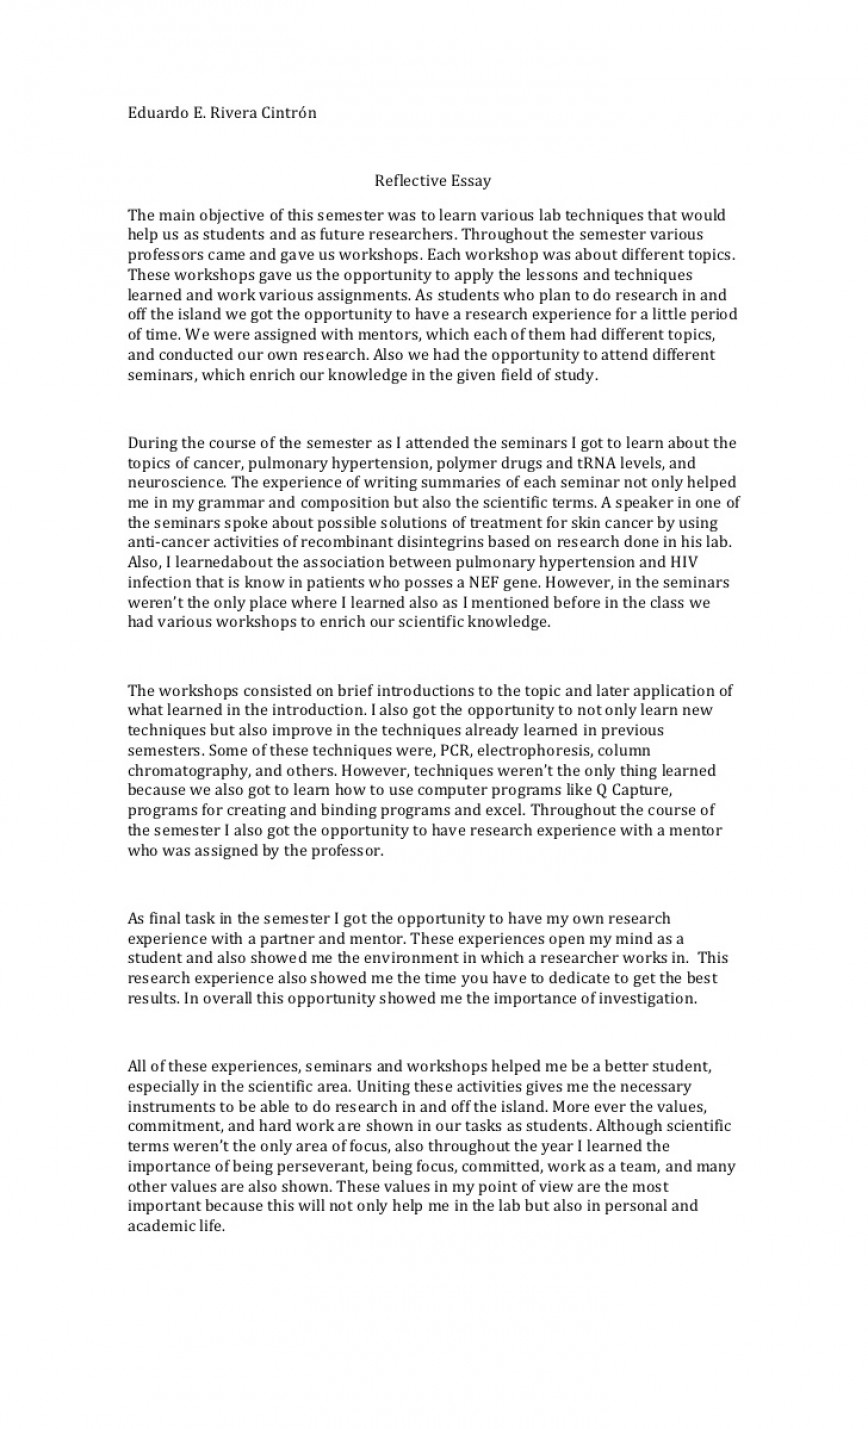 016 Essay Example How To Start Reflective Introduction Course Surprising A Do You An Sample